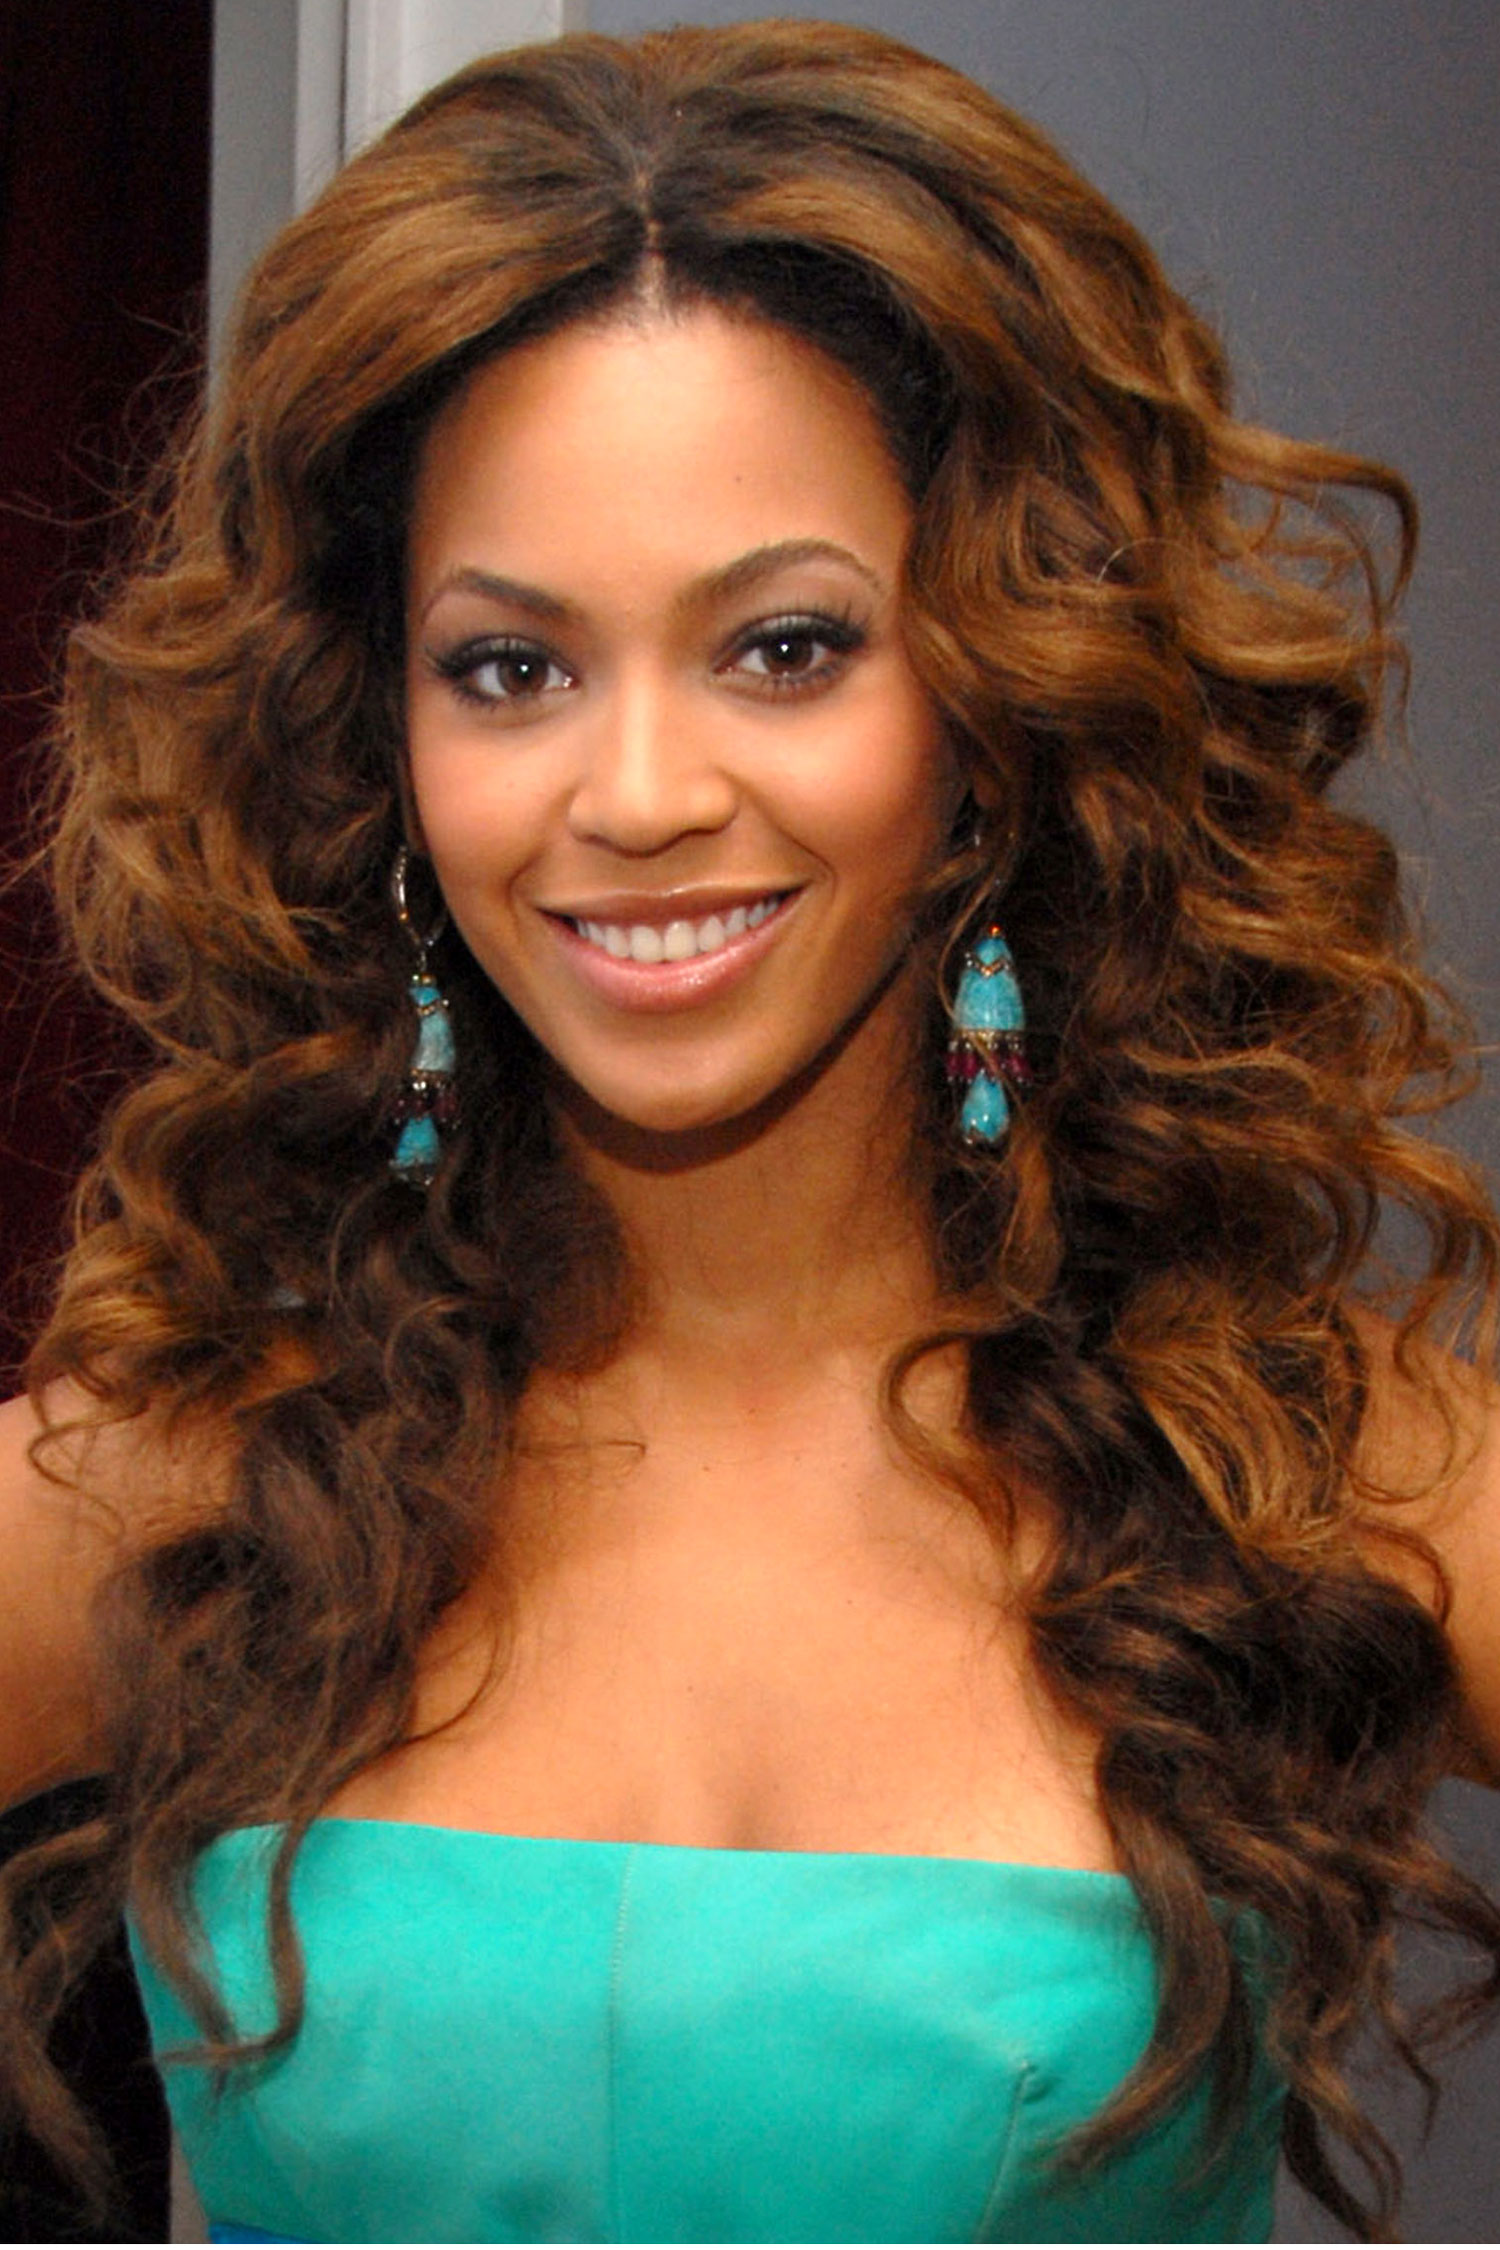 Surprising 40 Beyonce Hairstyles Beyonce39S Real Hair Long Hair And Short Short Hairstyles For Black Women Fulllsitofus